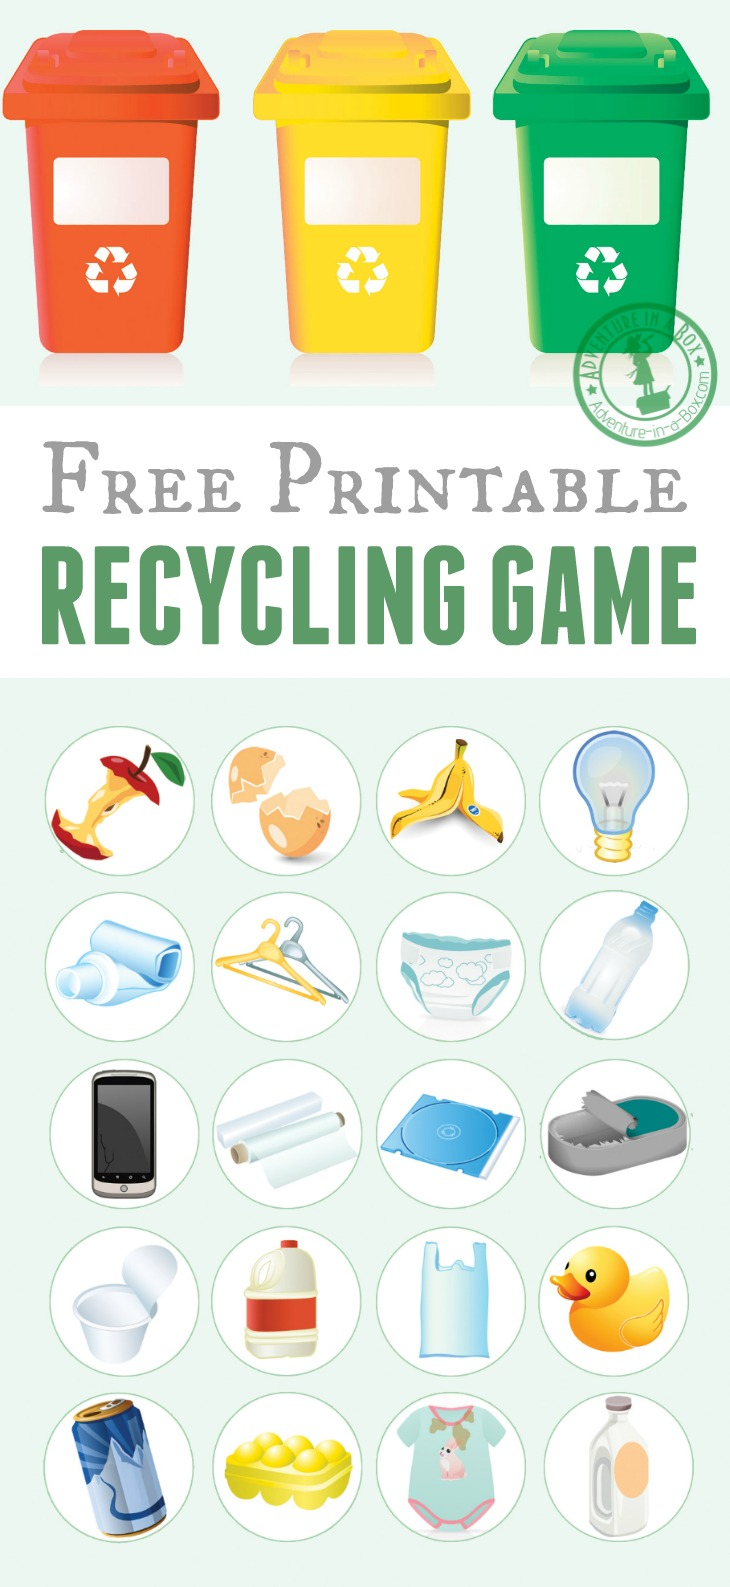 Use Your Recycling Program To Teach Children About Business And The Environment